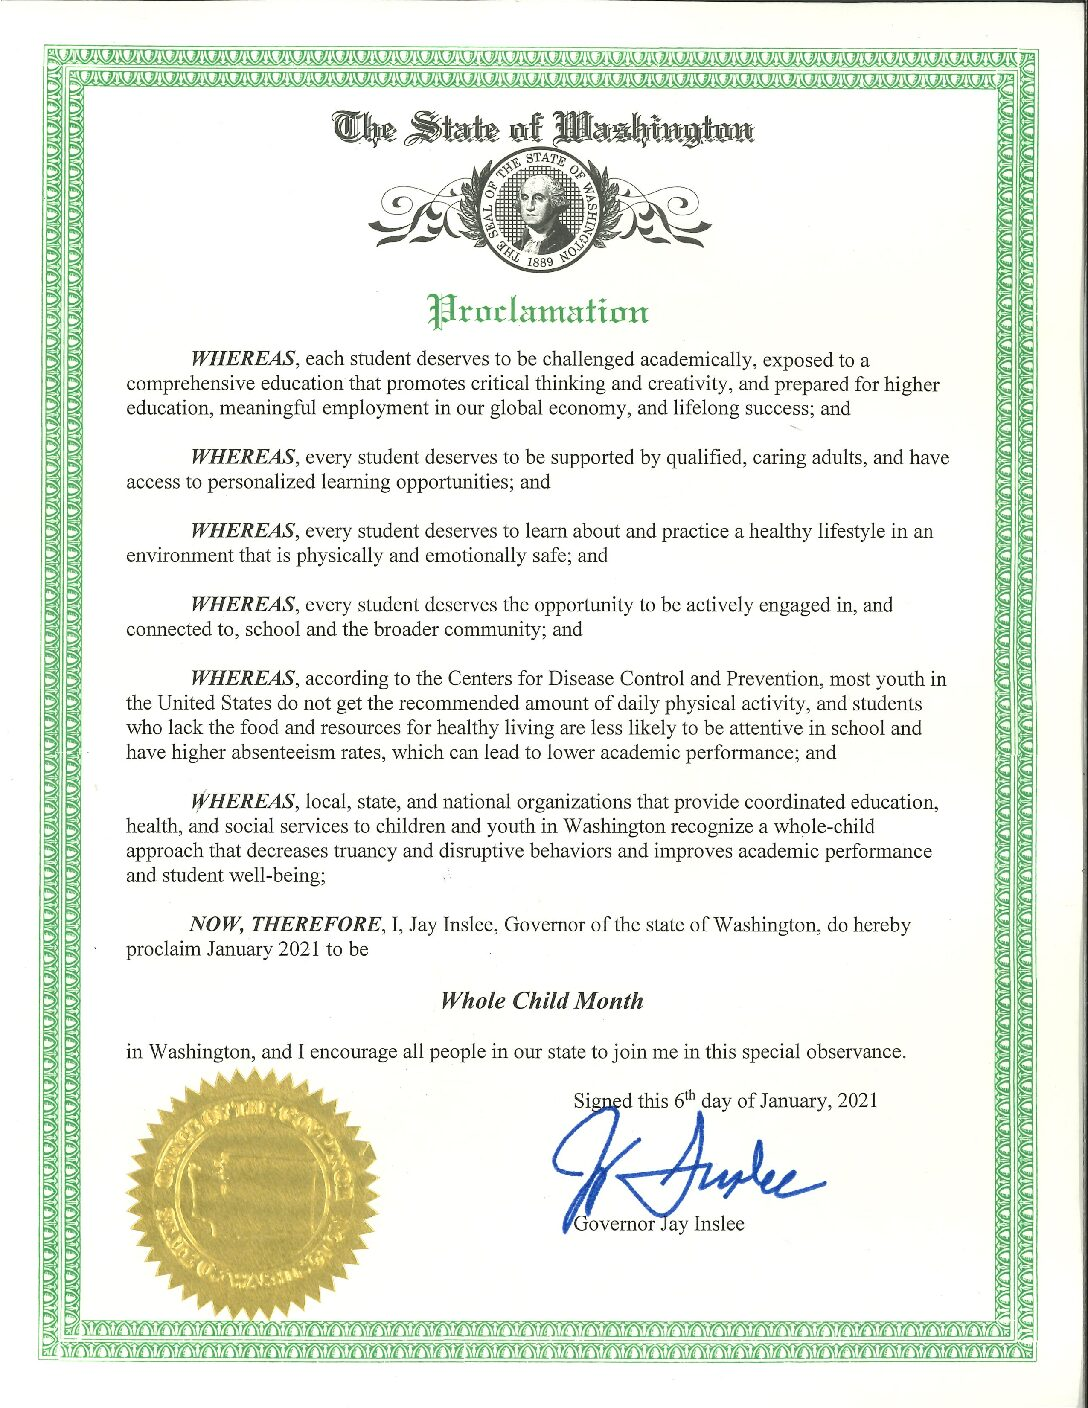 JANUARY | WHOLE CHILD MONTH in WASHINGTON STATE